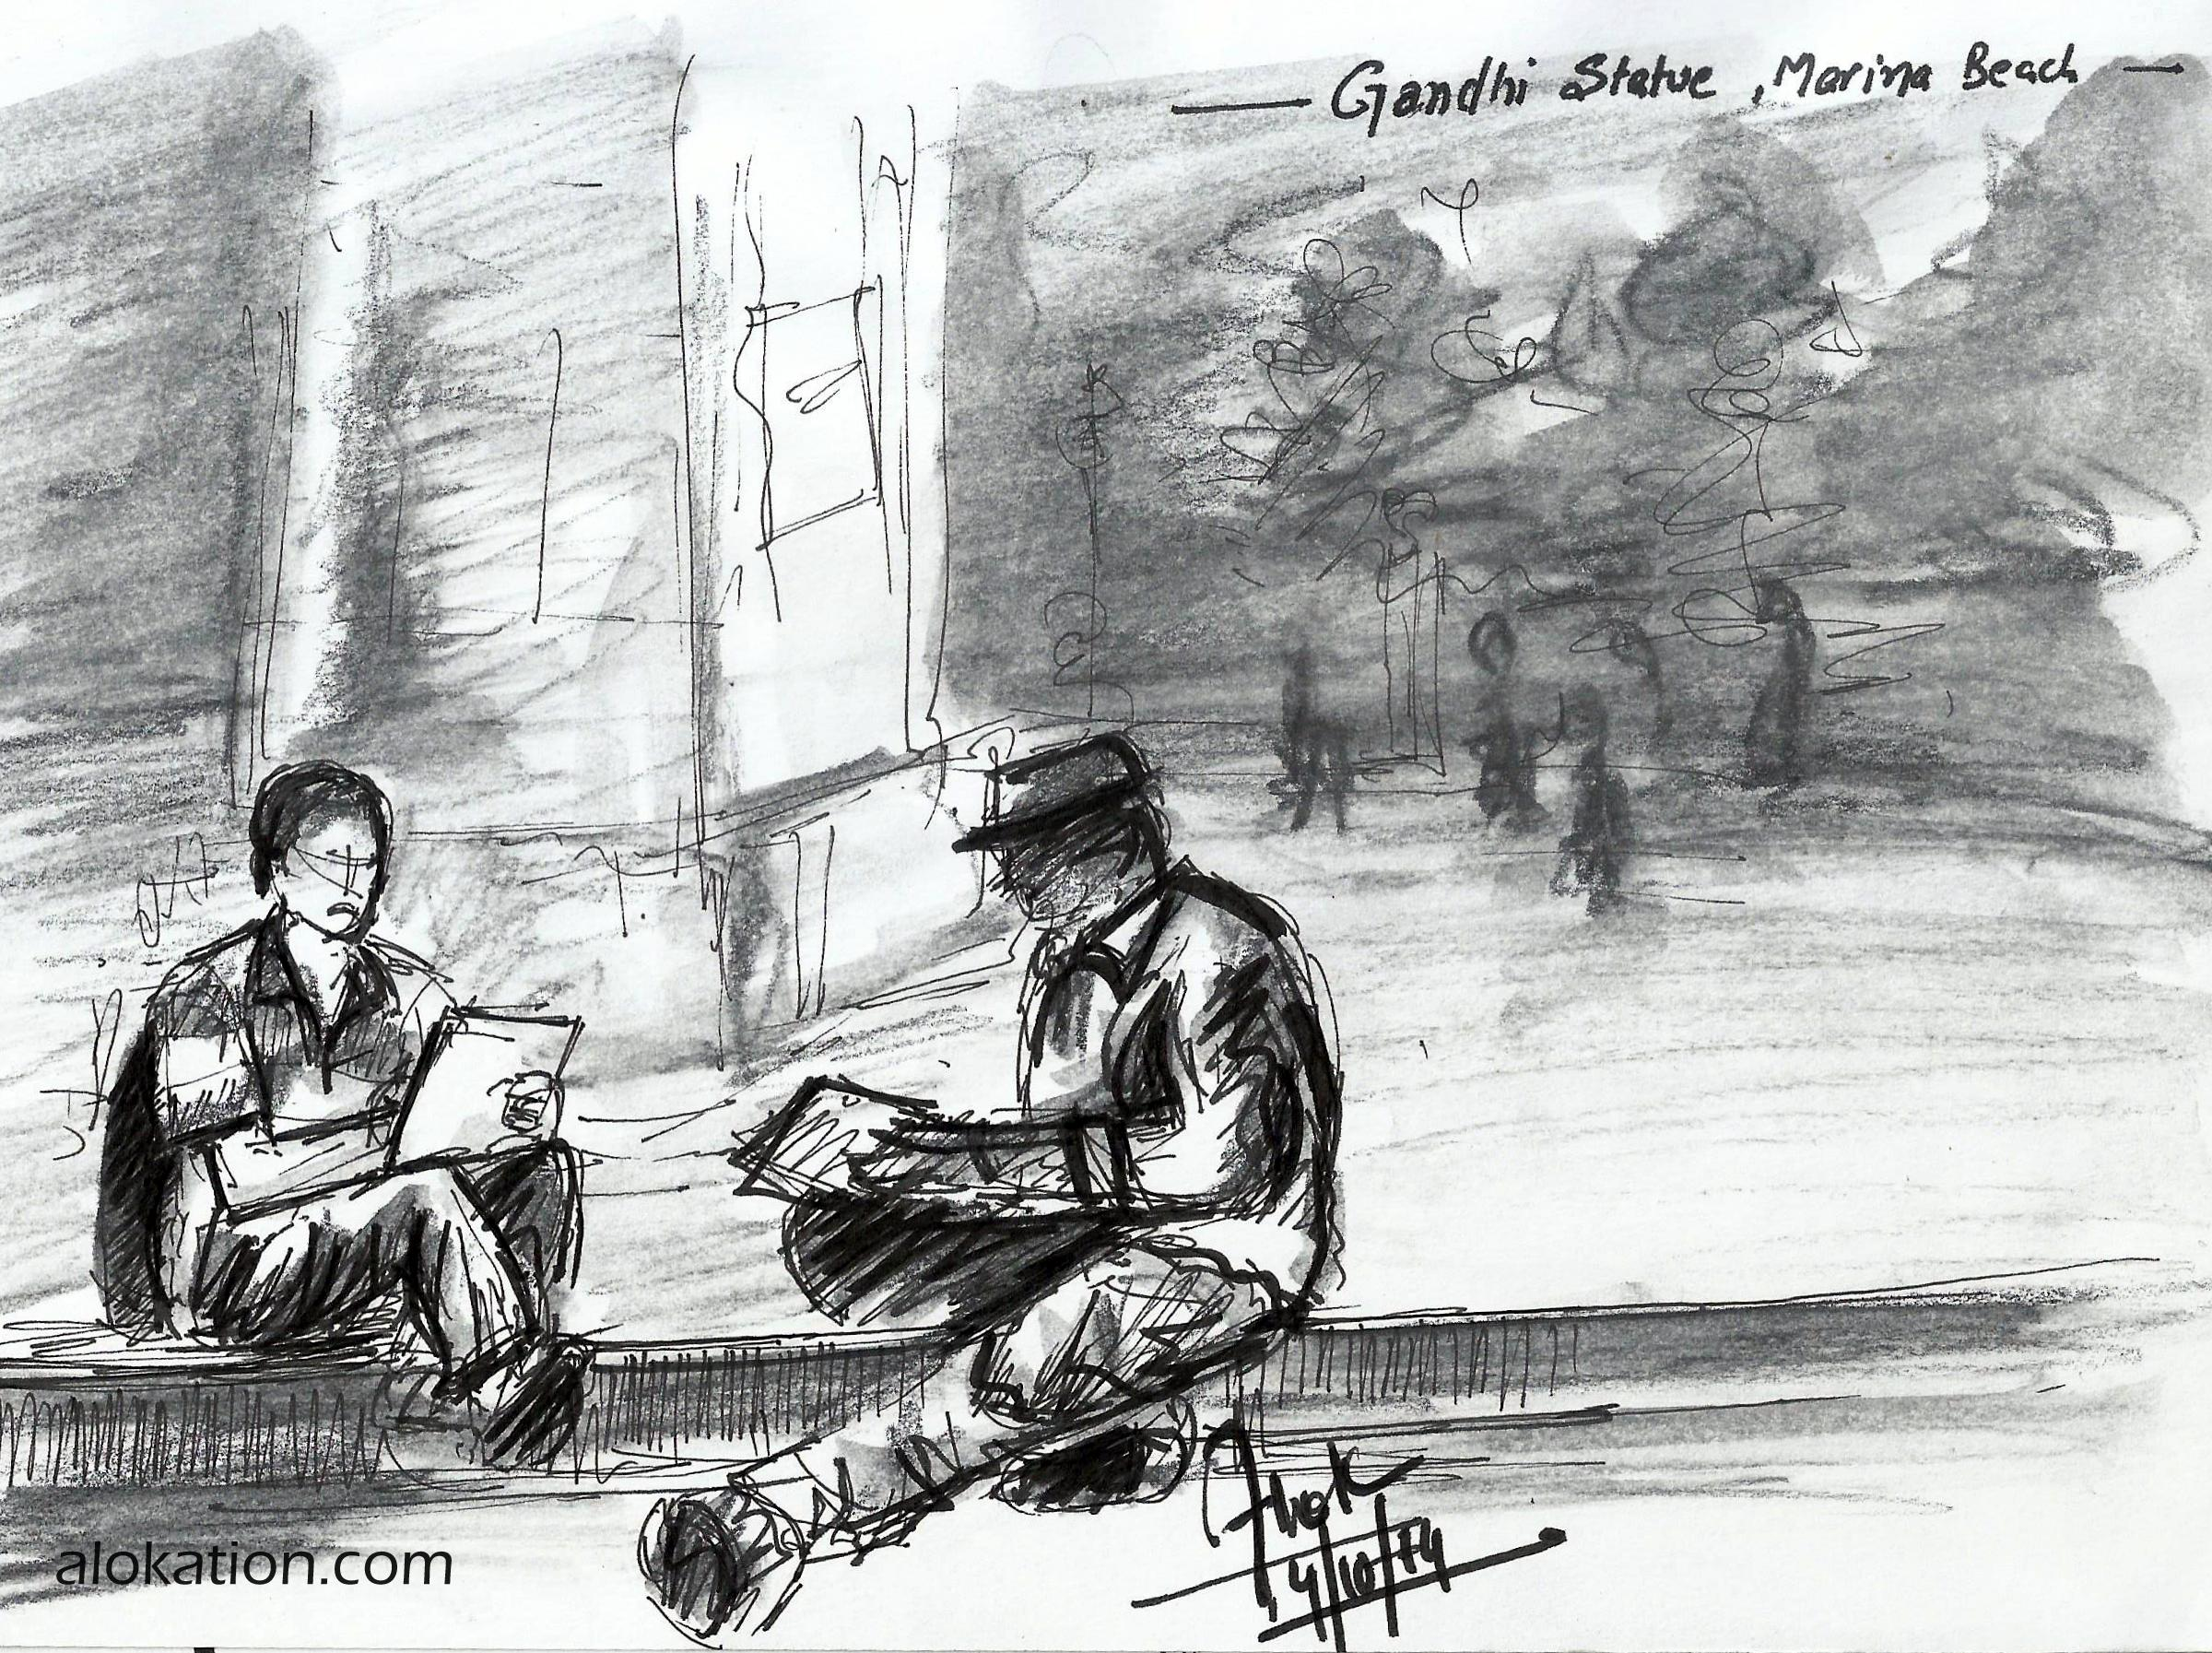 CWA Sketchers sketching under Gandhi Statue